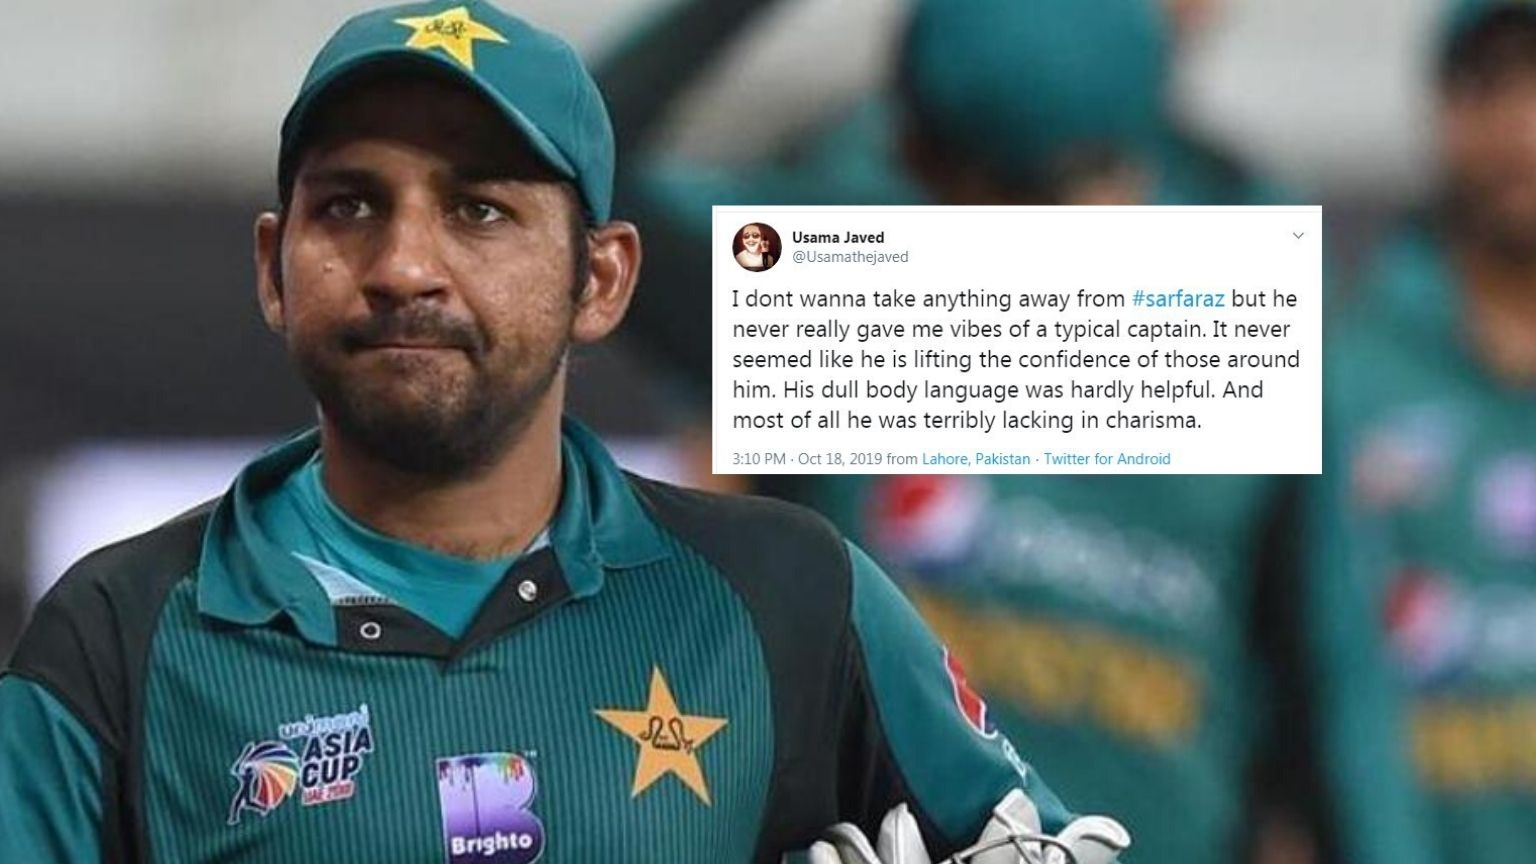 'Dumbest Decision' or Not? Twitter Divided on Sarfaraz' Sacking